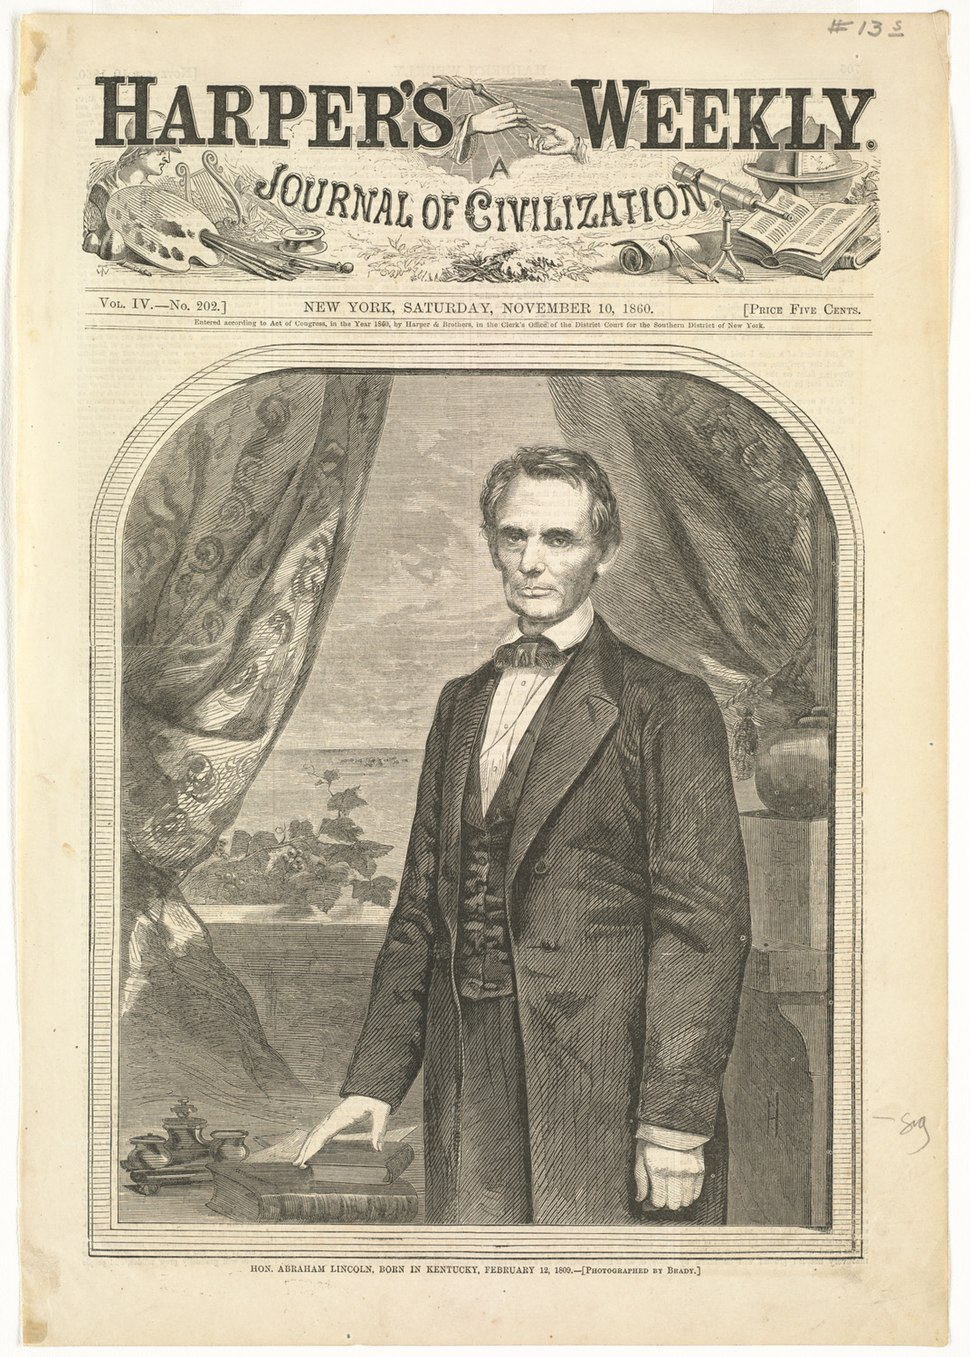 Hon. Abraham Lincoln, born in Kentucky, February 12, 1809 (Boston Public Library)